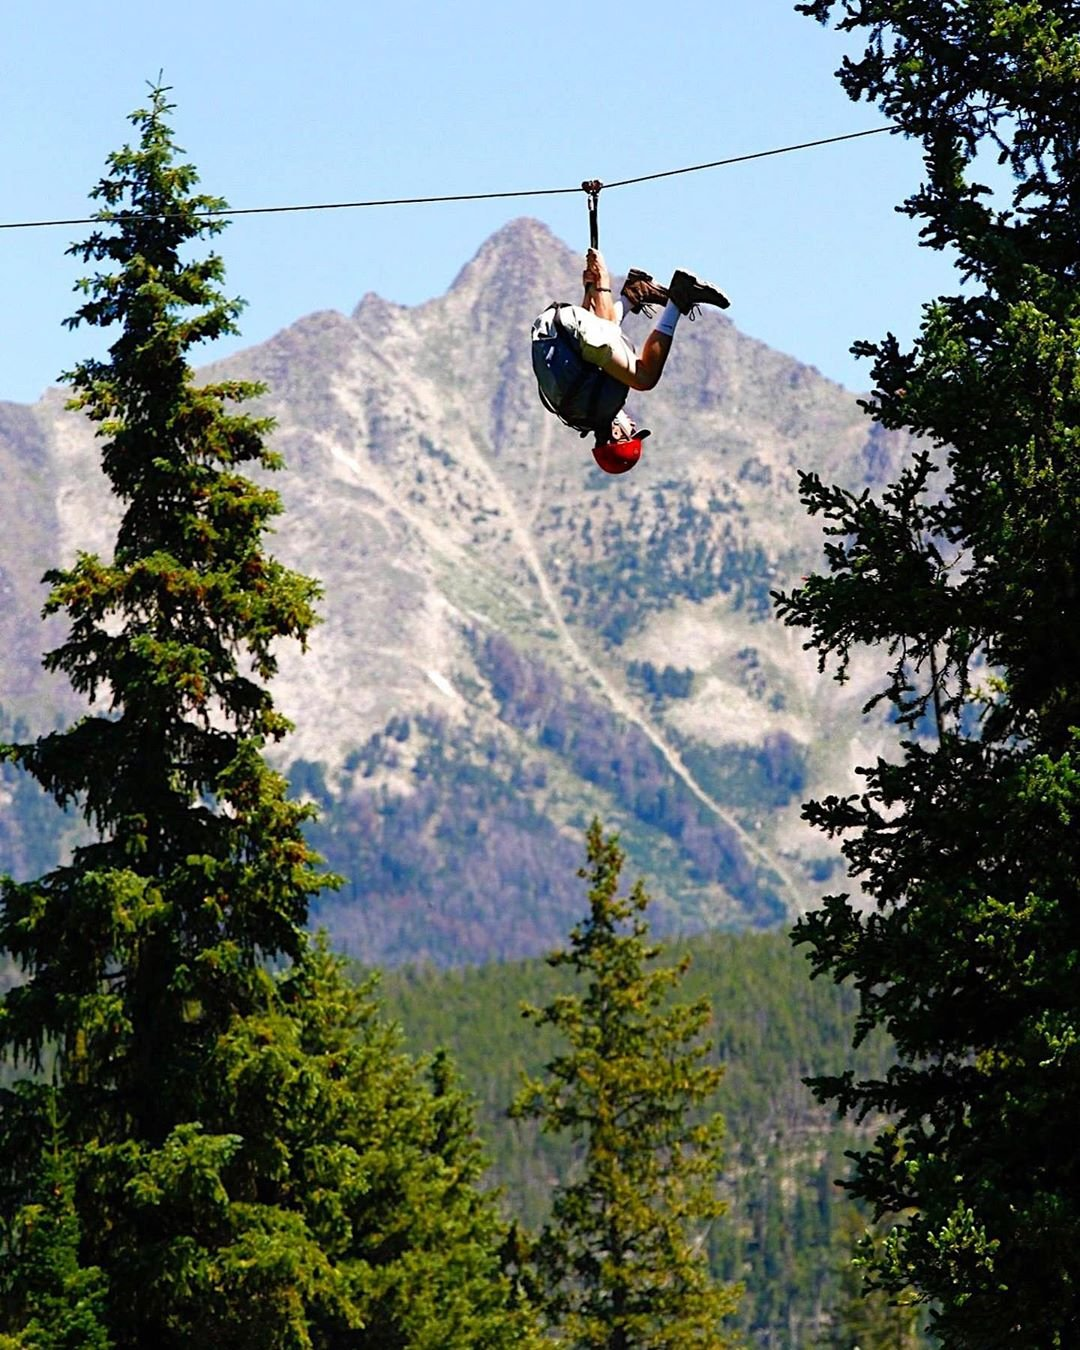 Photo by user whyitsmesky, caption reads Spider-Man tryouts  #bigskymontana #tbt #zipline #bigskyresort #nature #outdoors